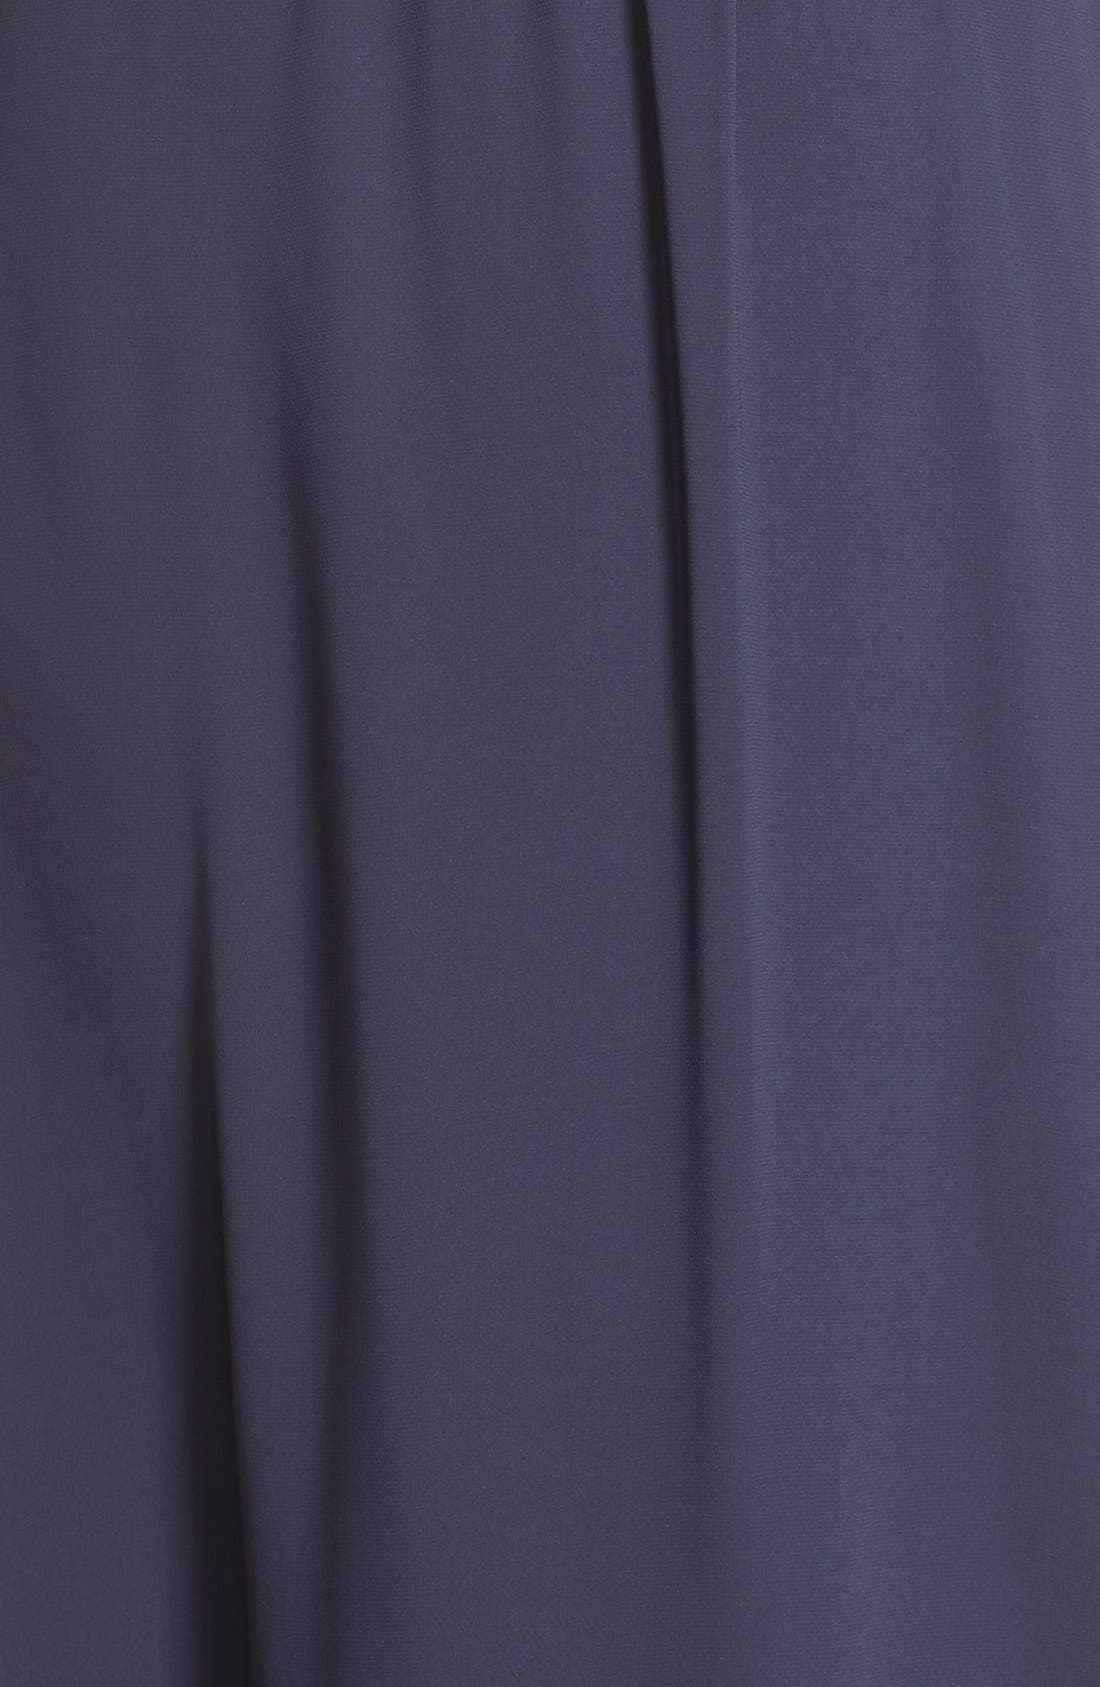 by Lauren Conrad 'Springfield' Cowl Neck Chiffon Gown,                             Alternate thumbnail 5, color,                             410